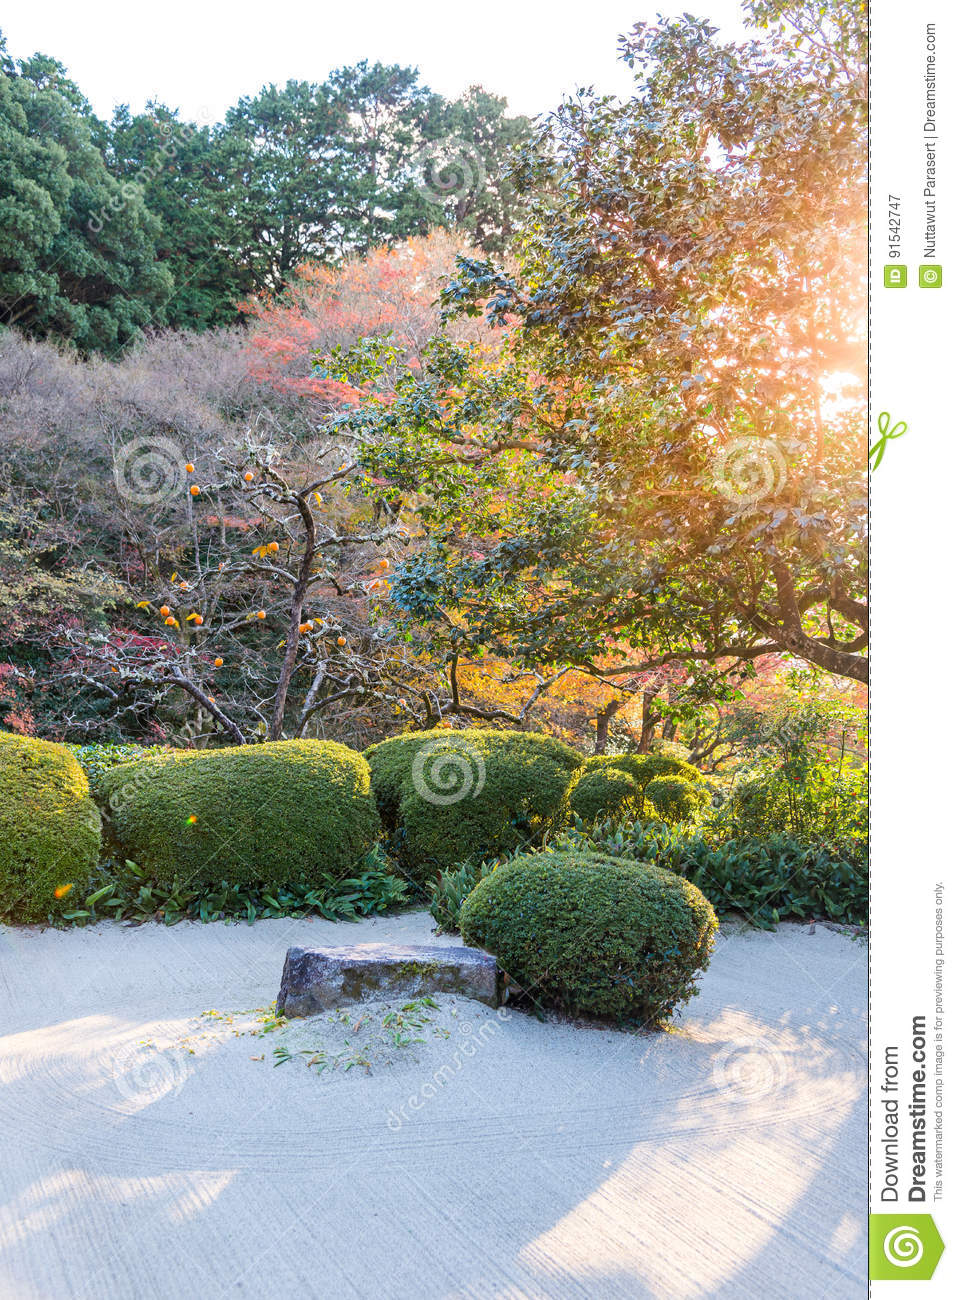 Japanese Garden Decor With Rock And Bush, Draw Lthe Line With G